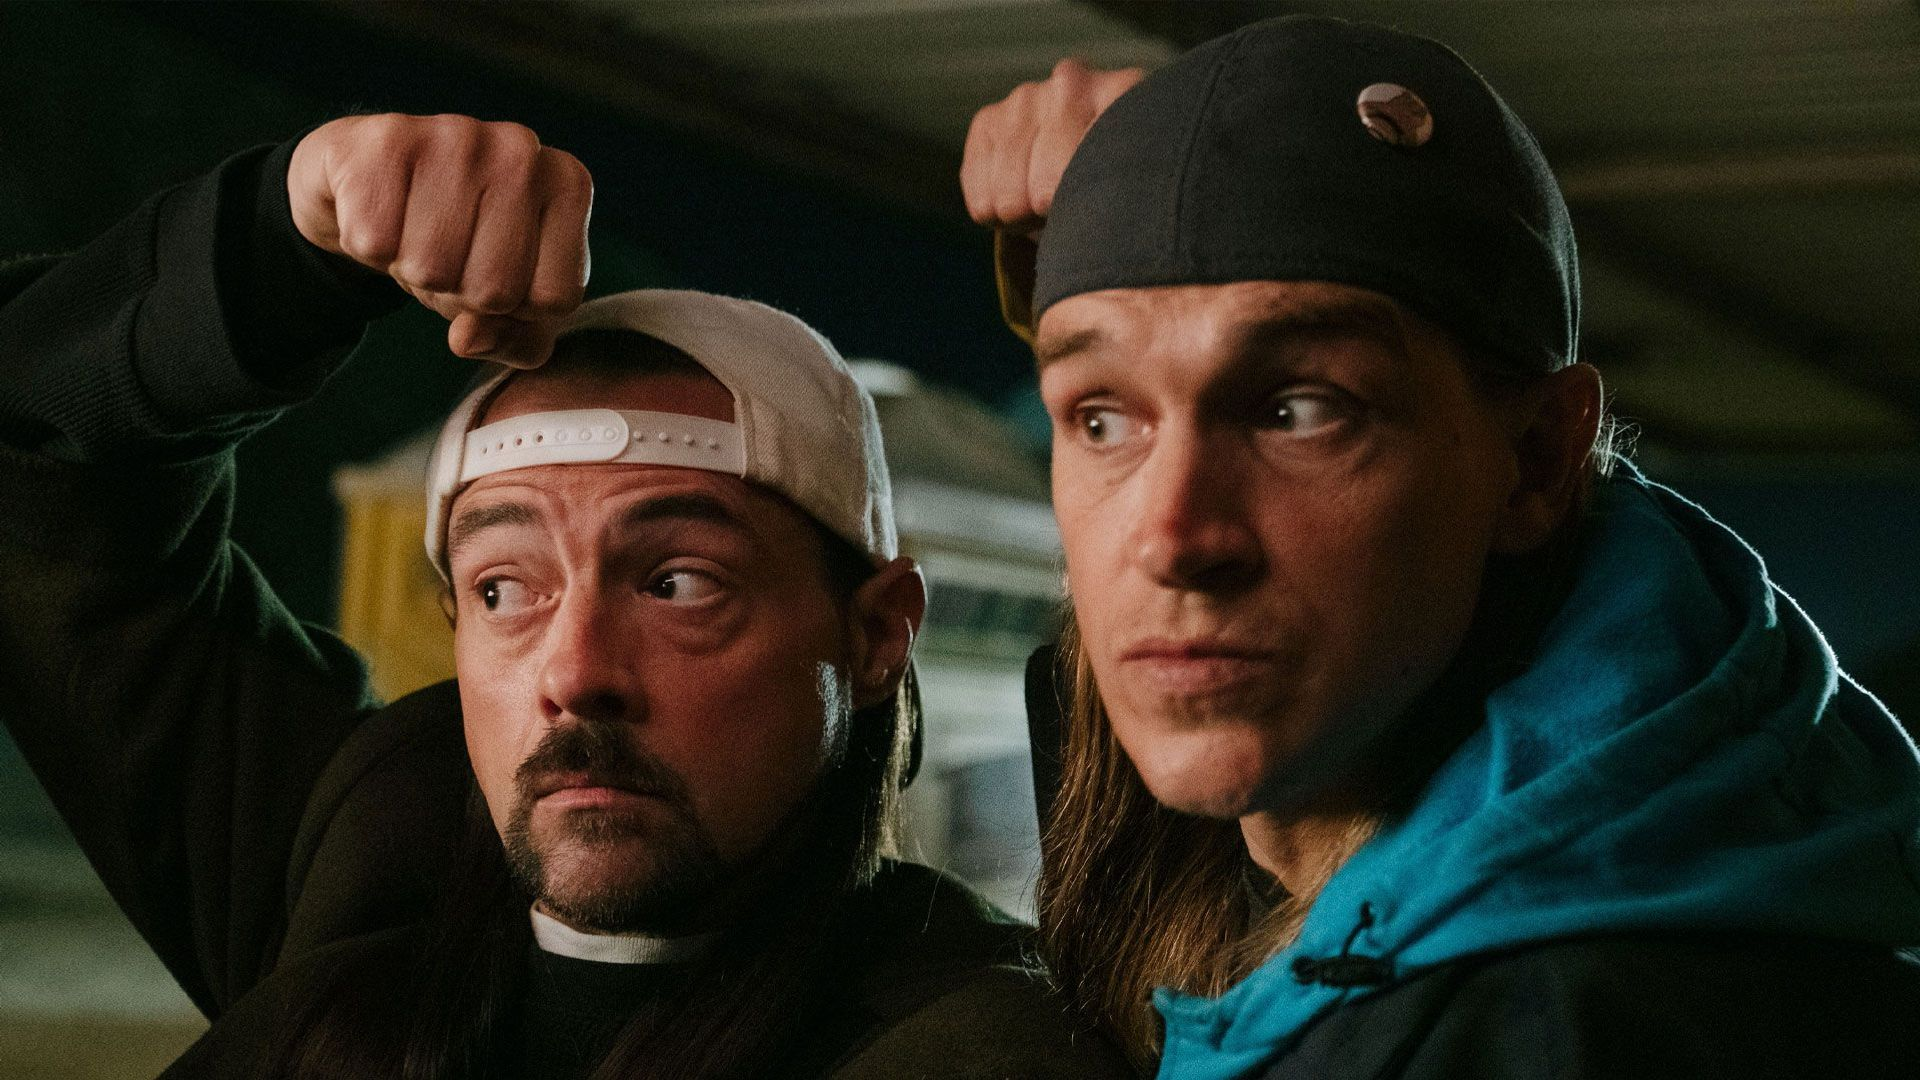 kevin-smith-jason-mewes-jay-and-silent-bob-reboot